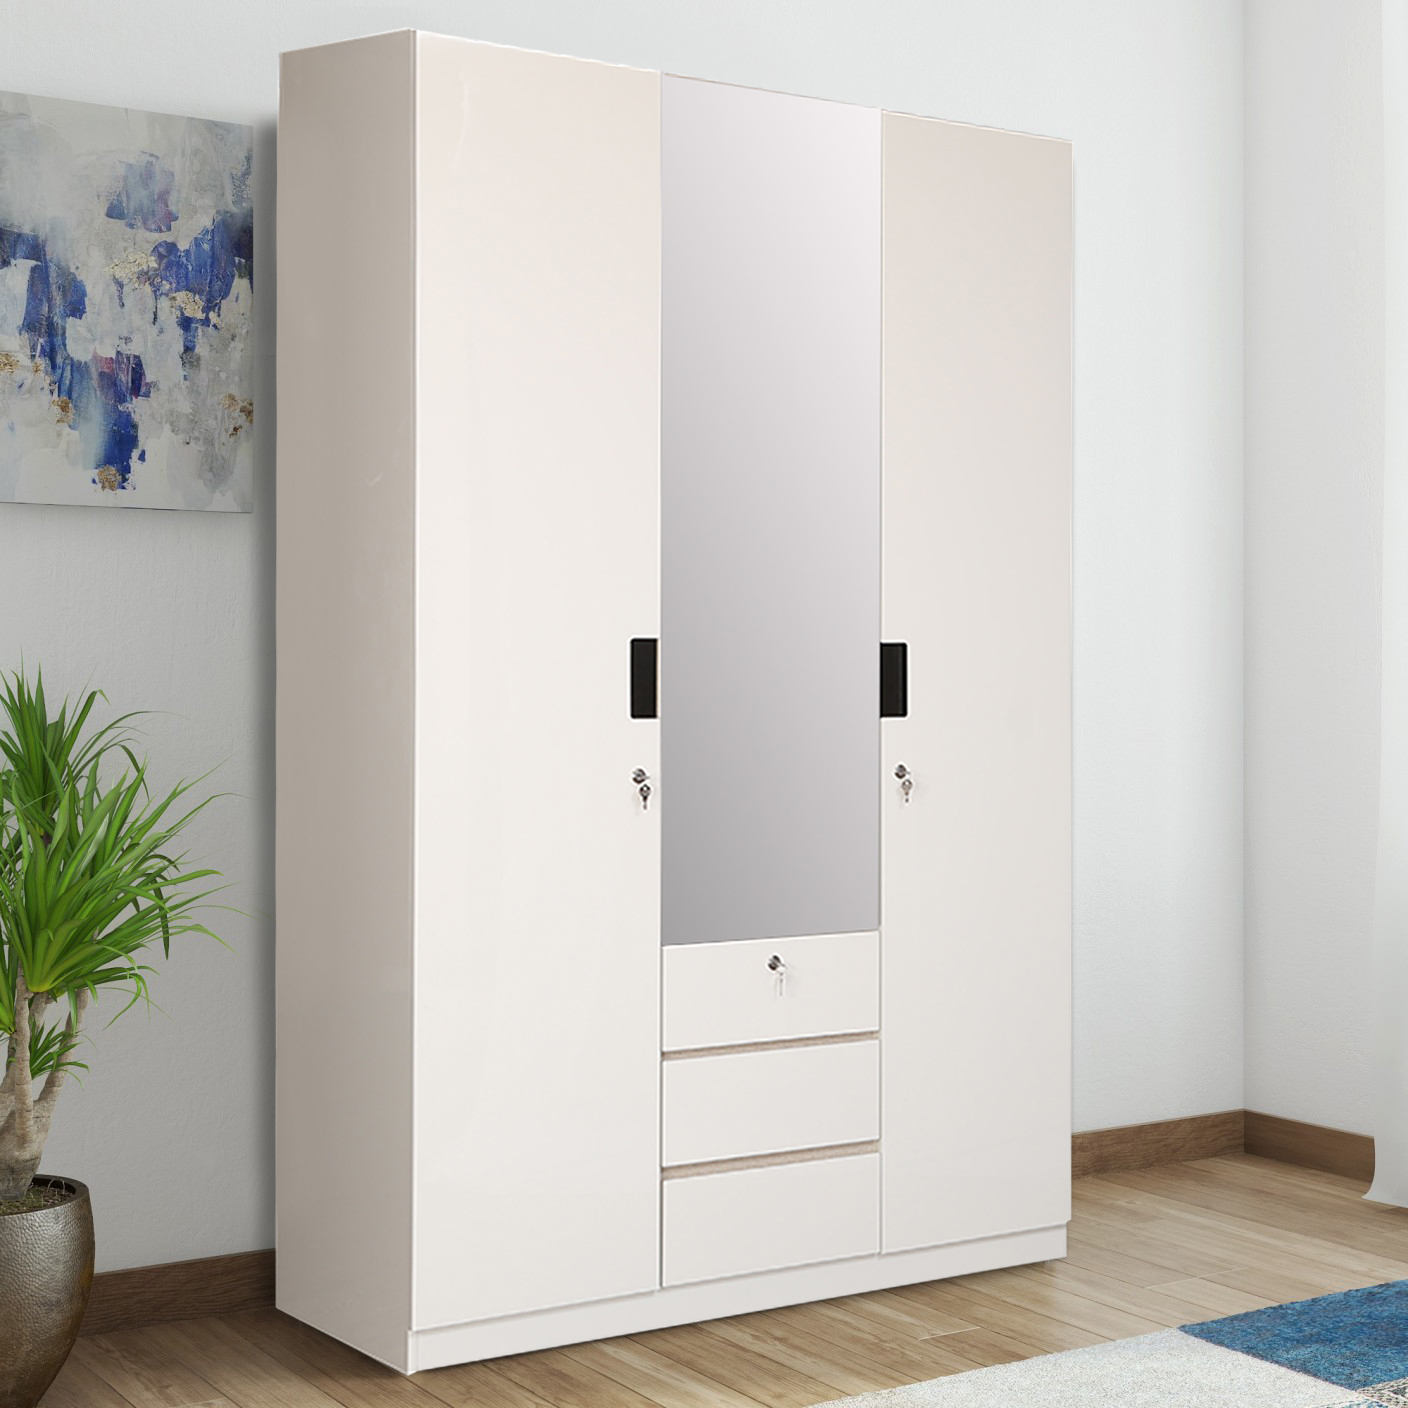 Edwina Engineered Wood Three Door Wardrobe in White High Gloss Colour by HomeTown